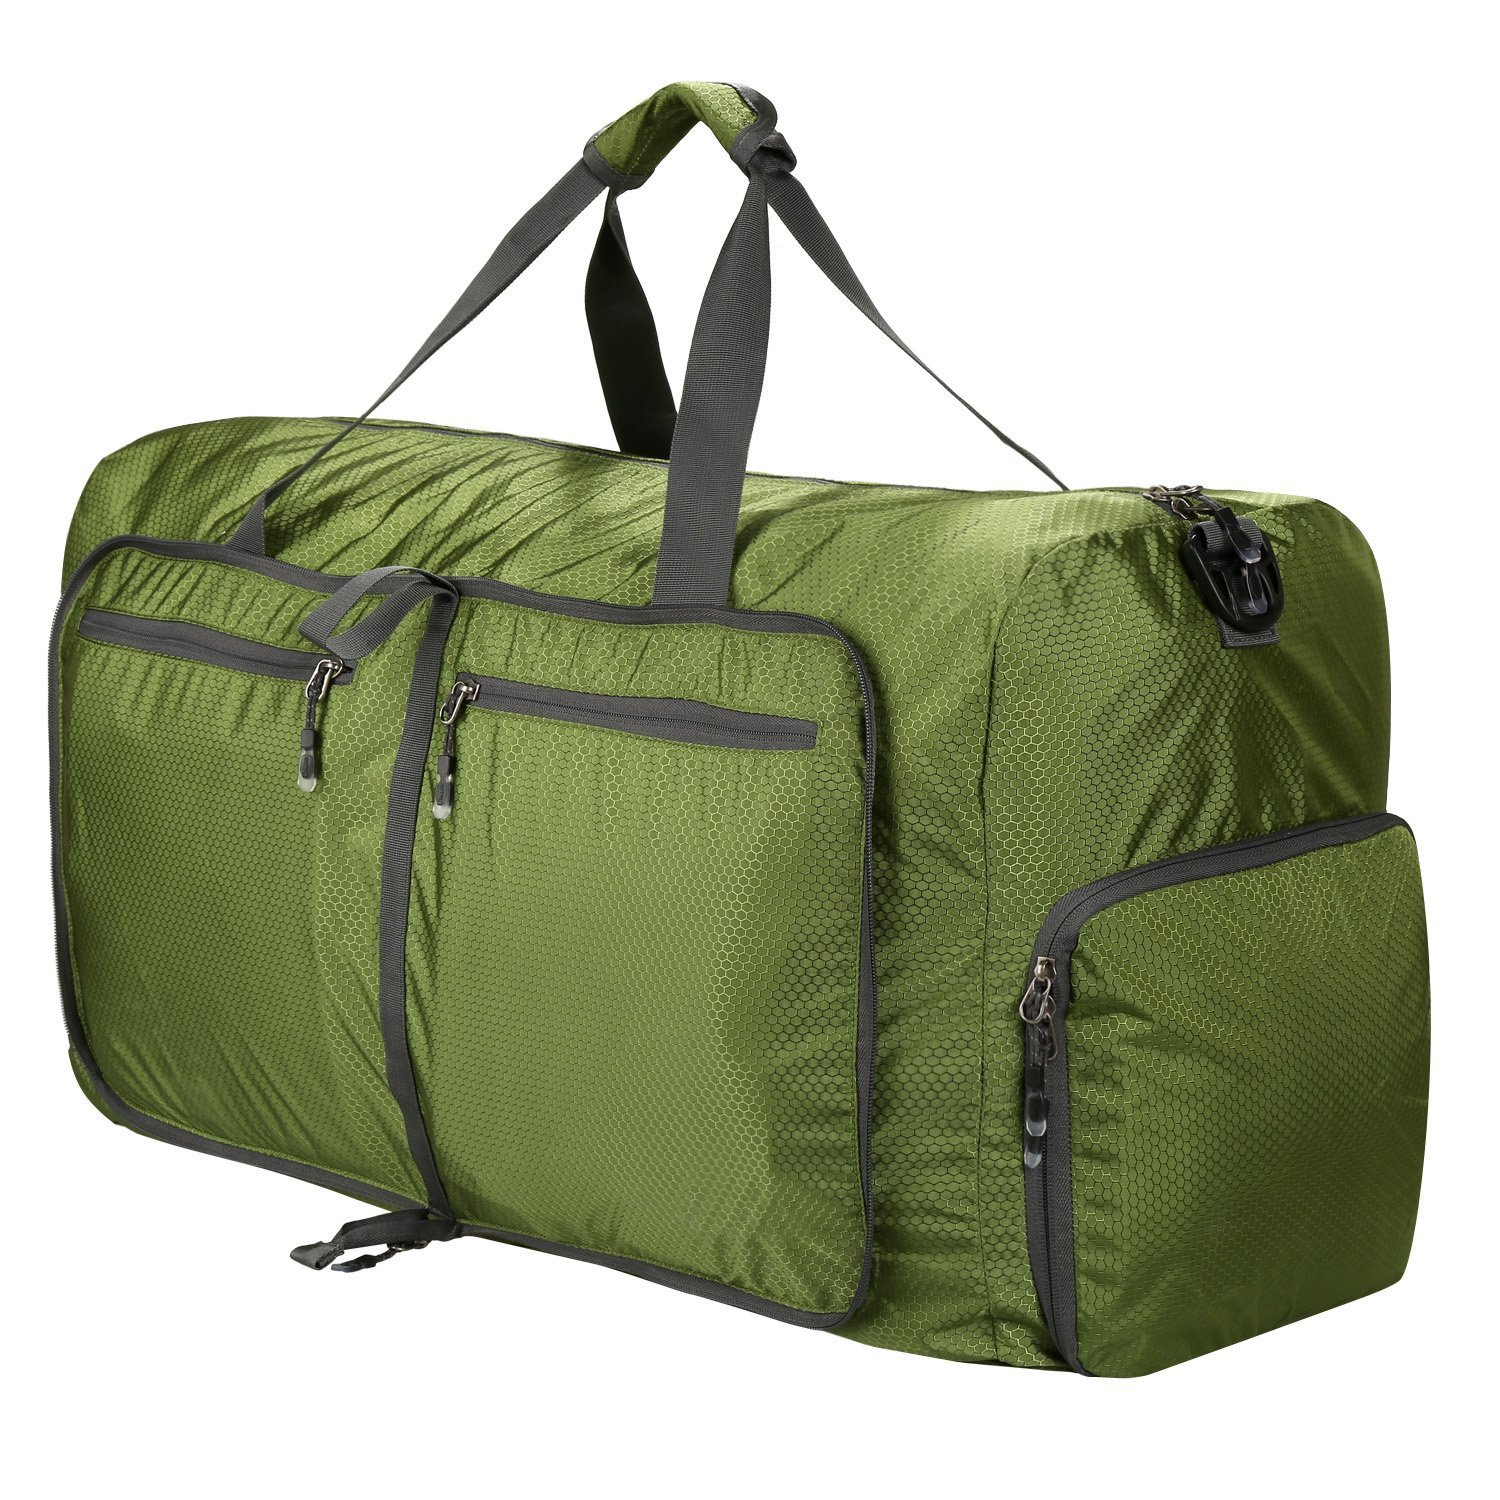 e7fc4d71bc82 Get Quotations · Duffle Bag Large SIze for Camping